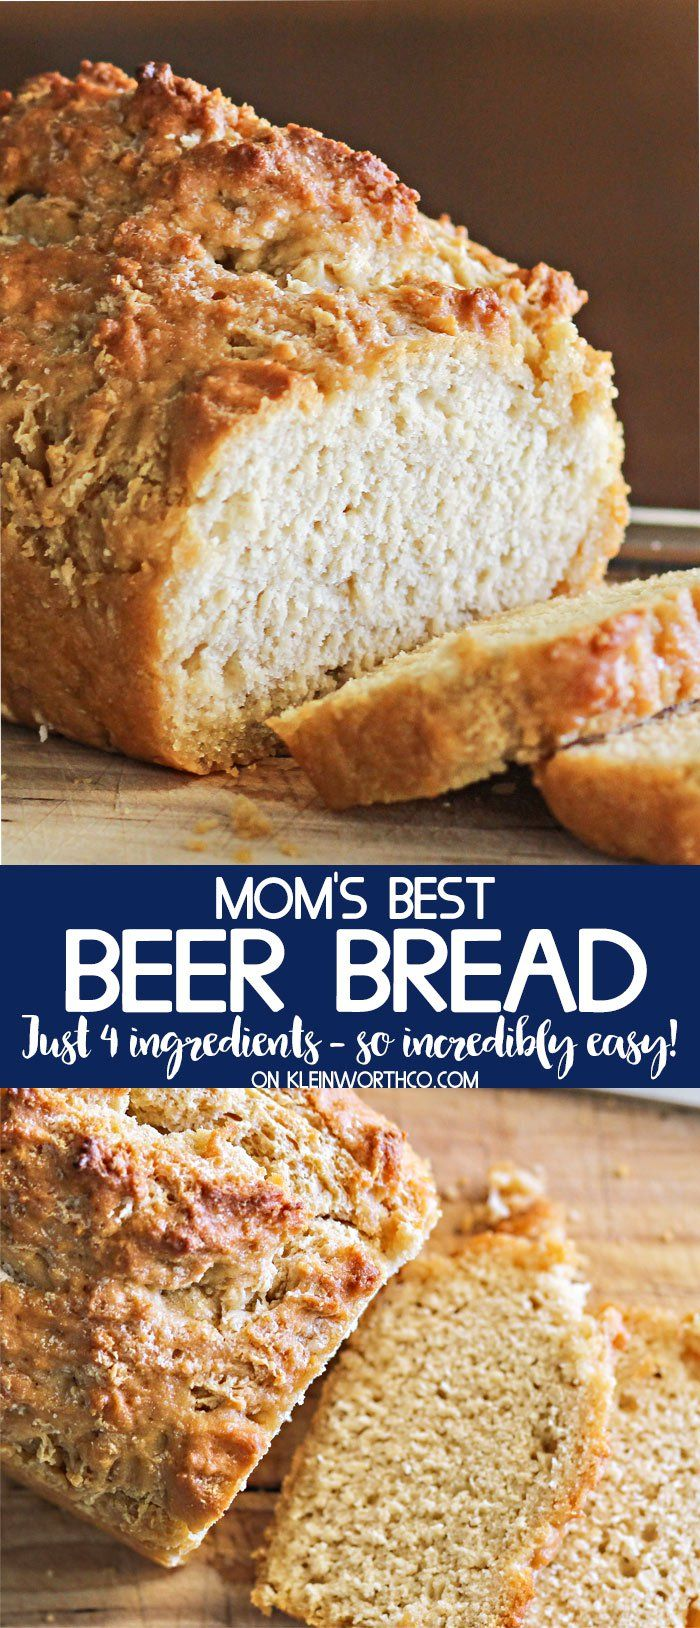 Moms Best Beer Bread recipe is one of the easiest bread recipes around. With just 4 ingredients. no rise time &… | Easy bread recipes. Beer ...